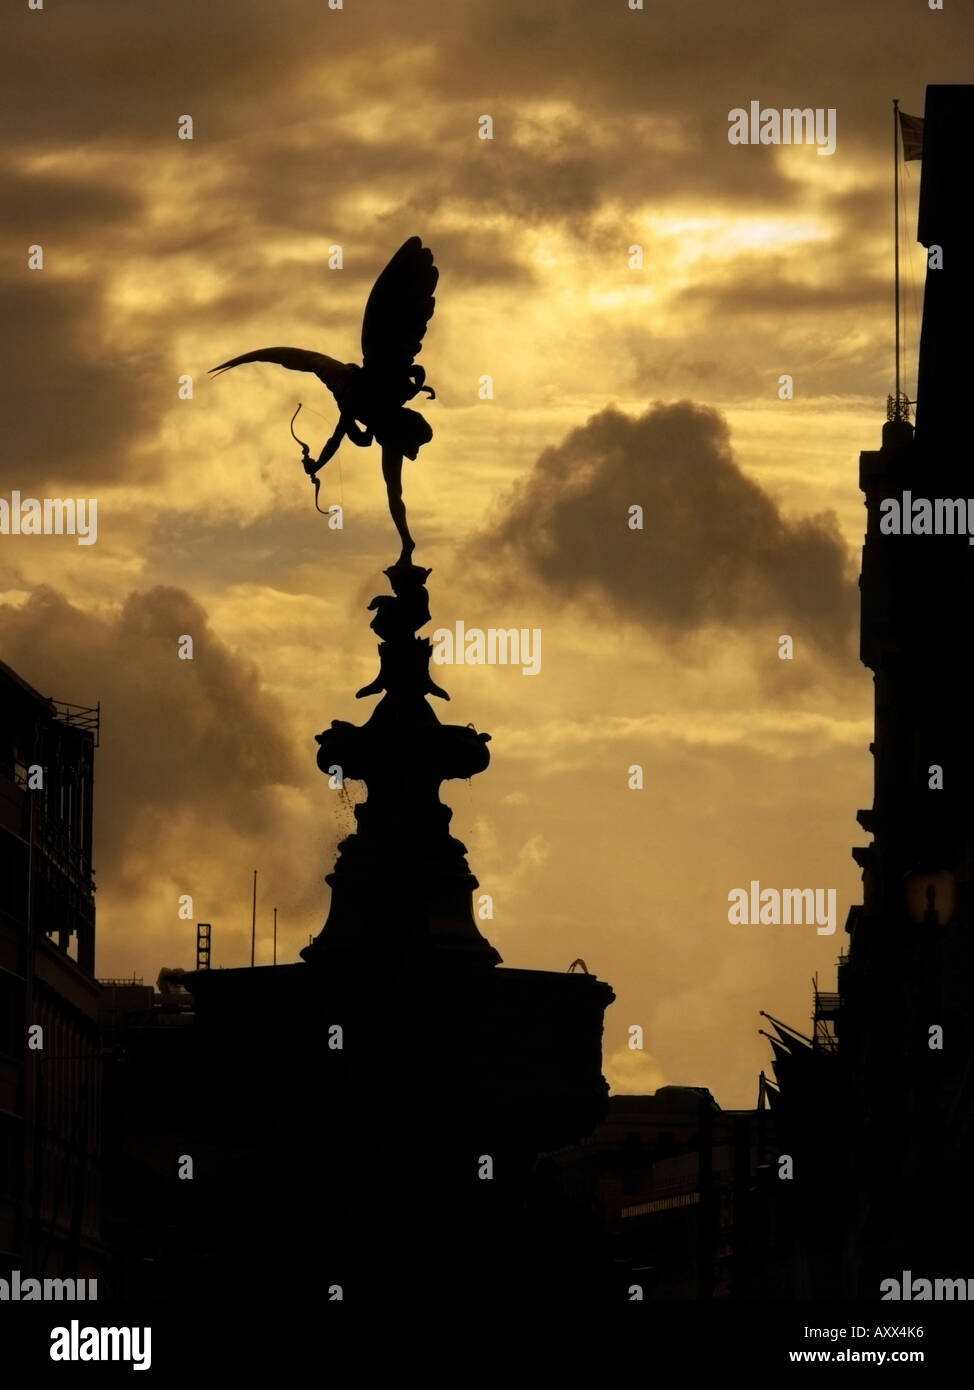 picadilly archer, eros - Stock Image